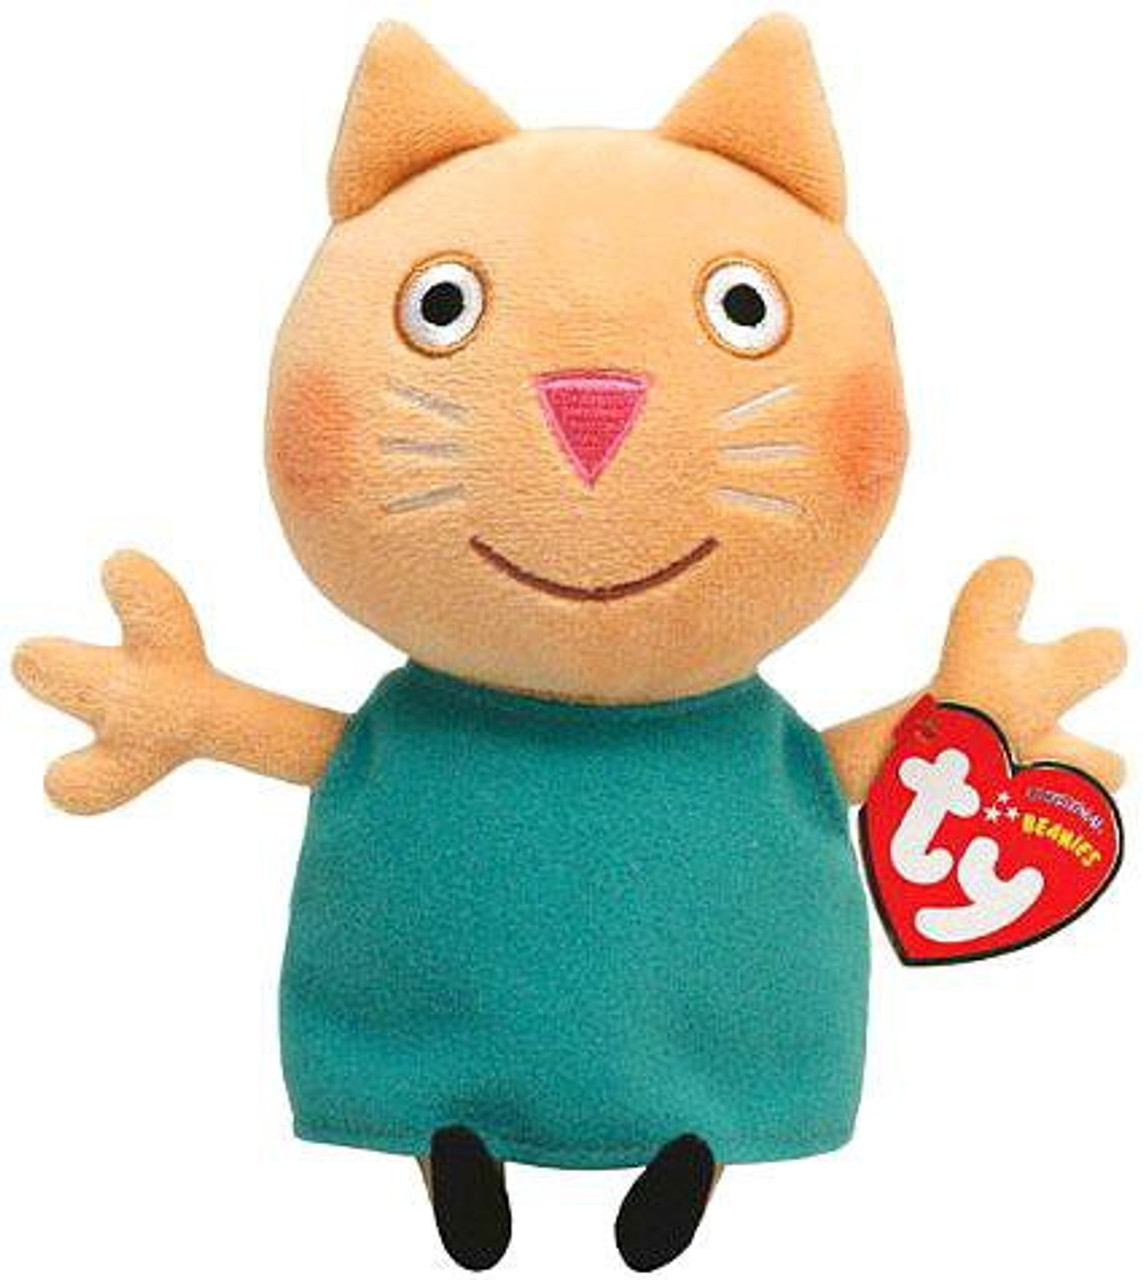 d7ca9f6d1a8 Beanie Babies Peppa Pig Candy Cat Exclusive Beanie Baby Plush Ty - ToyWiz